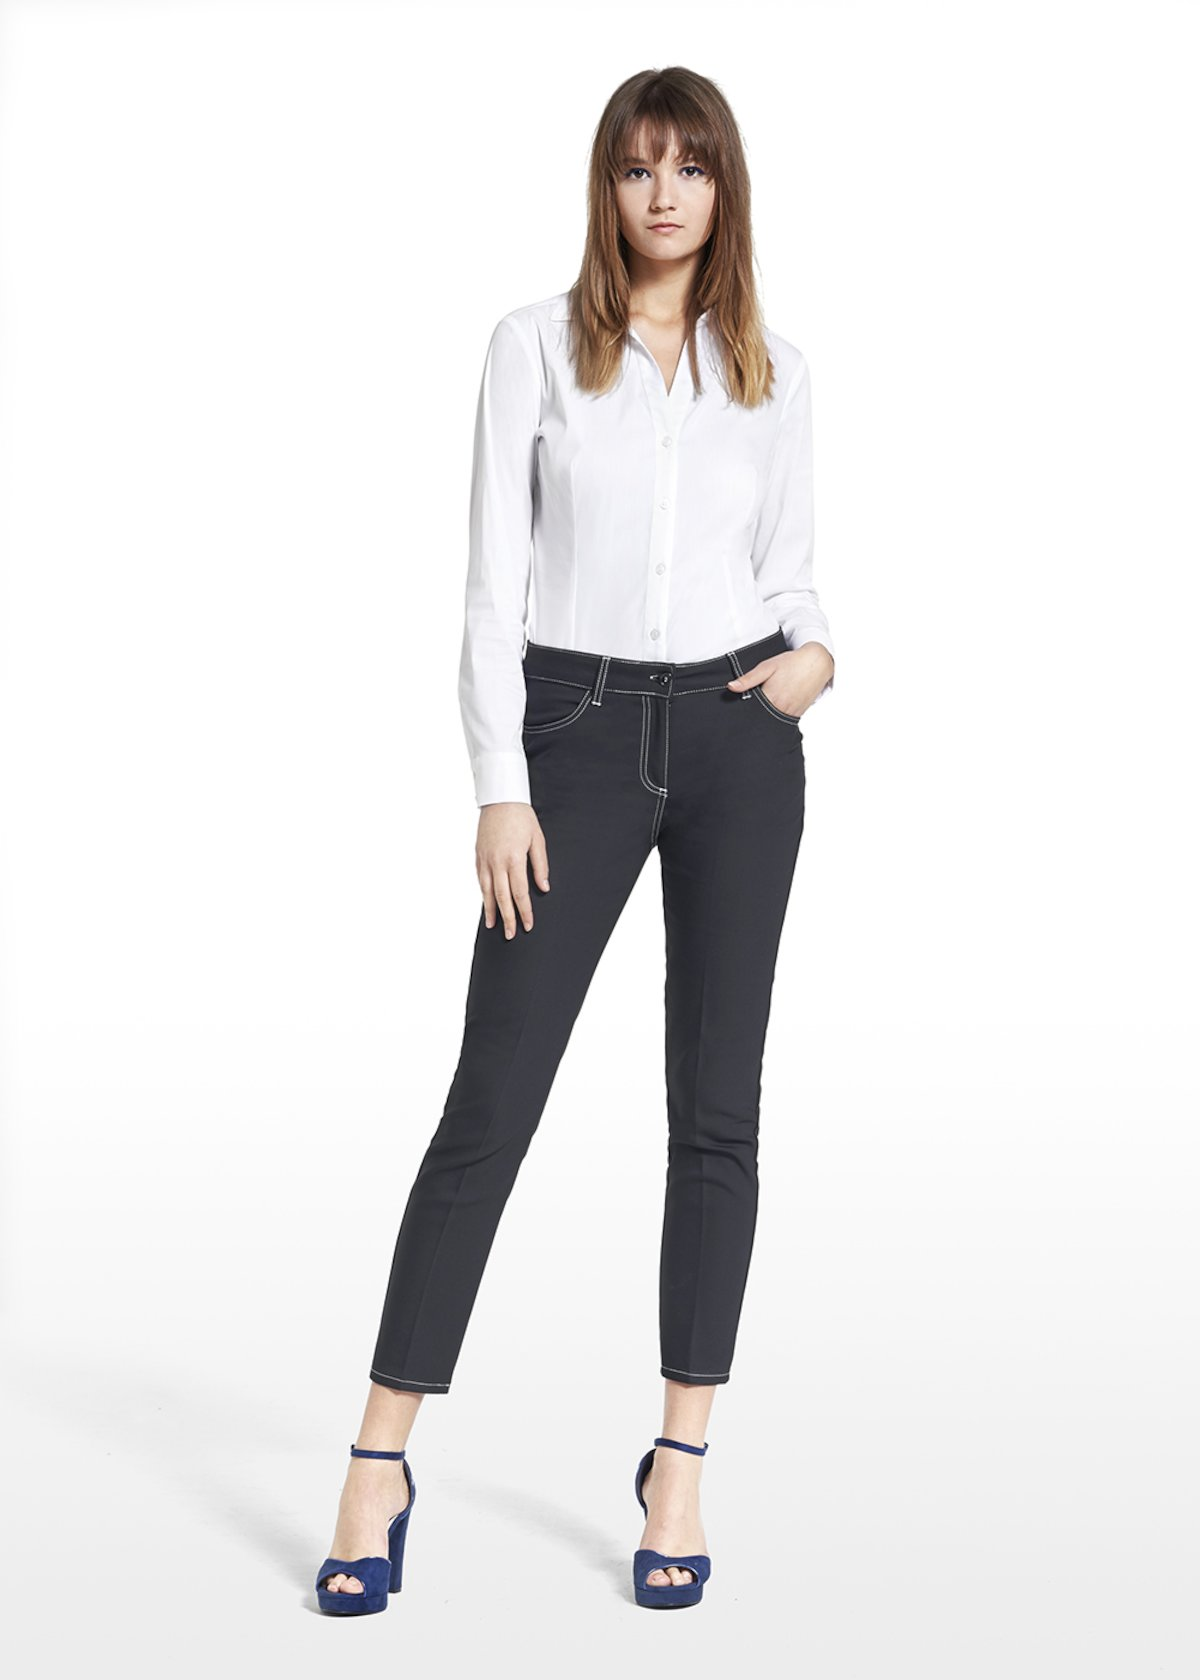 Poplin long-sleeved blouse Crizia - White - Woman